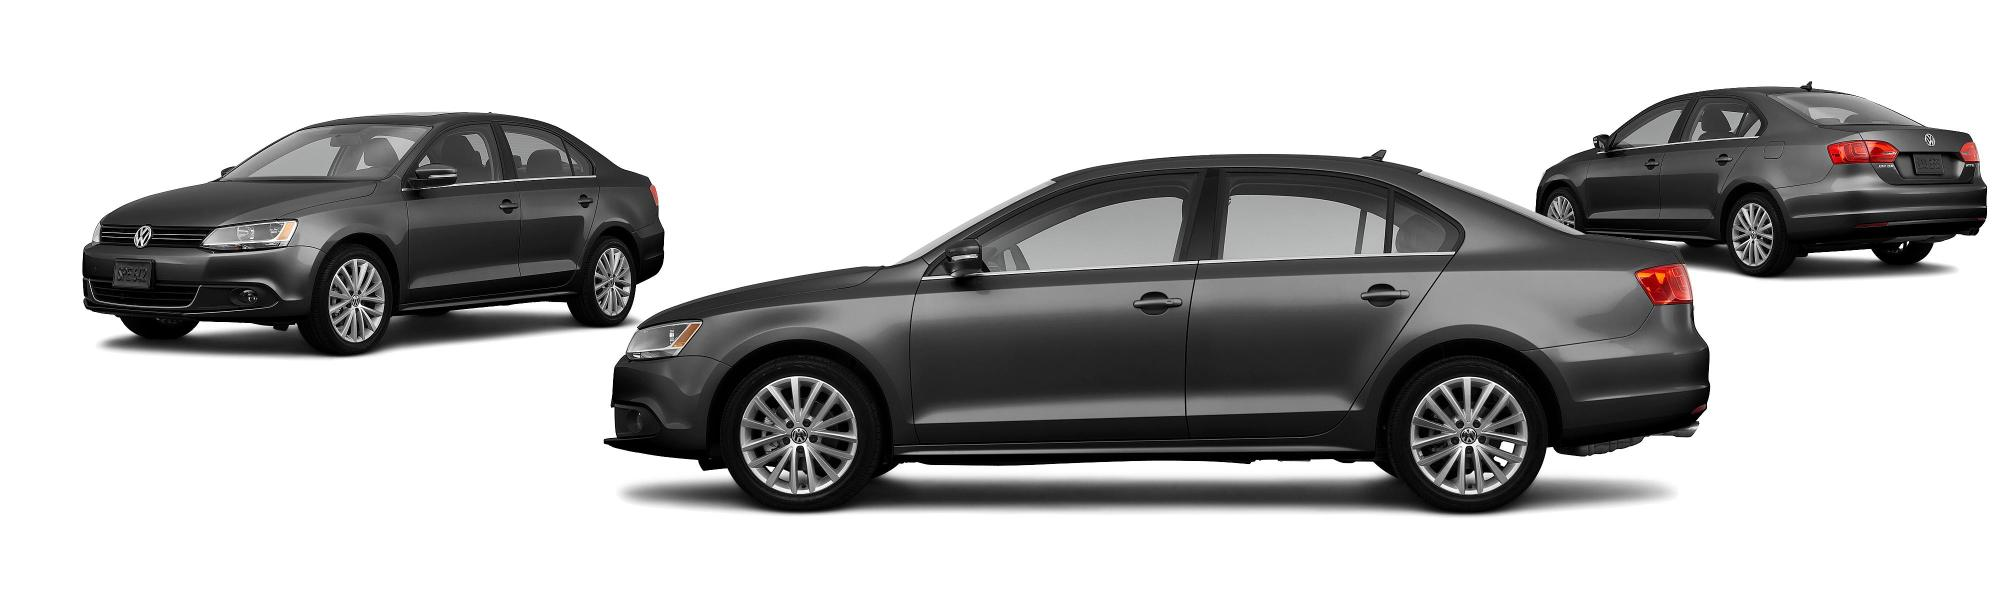 hight resolution of 2011 volkswagen jetta sel 4dr sedan 5m w sport package research groovecar